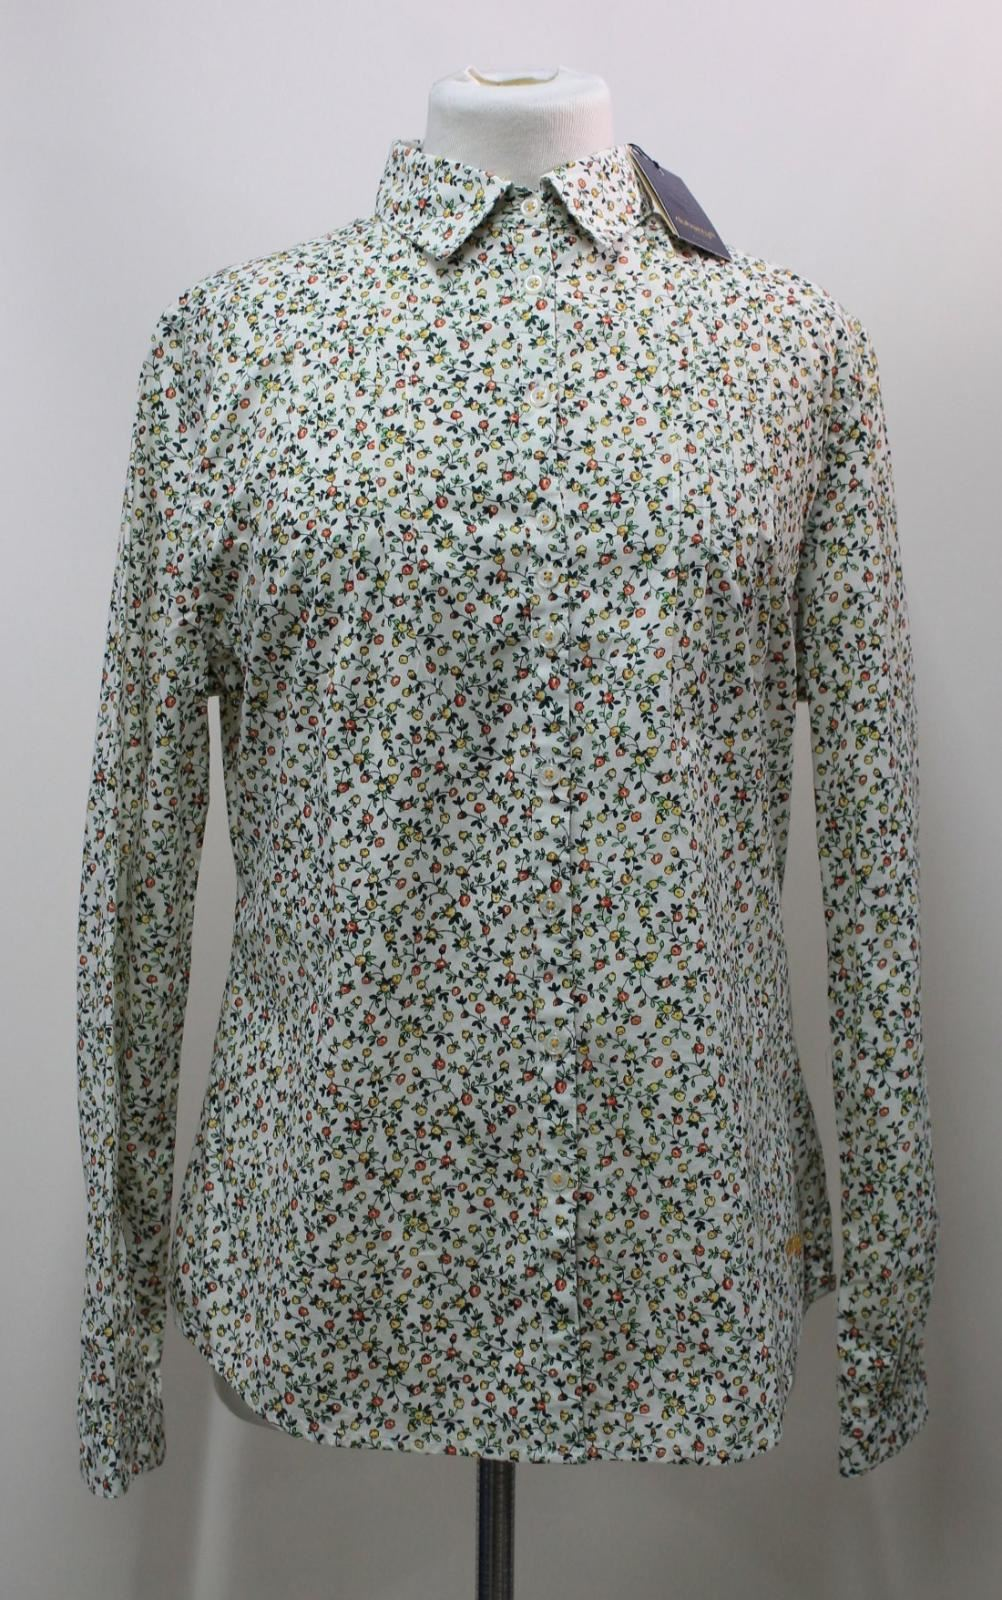 BNWT-DUBARRY-Ladies-White-Cotton-Floral-Pattern-Long-Sleeved-Shirt-Size-UK8